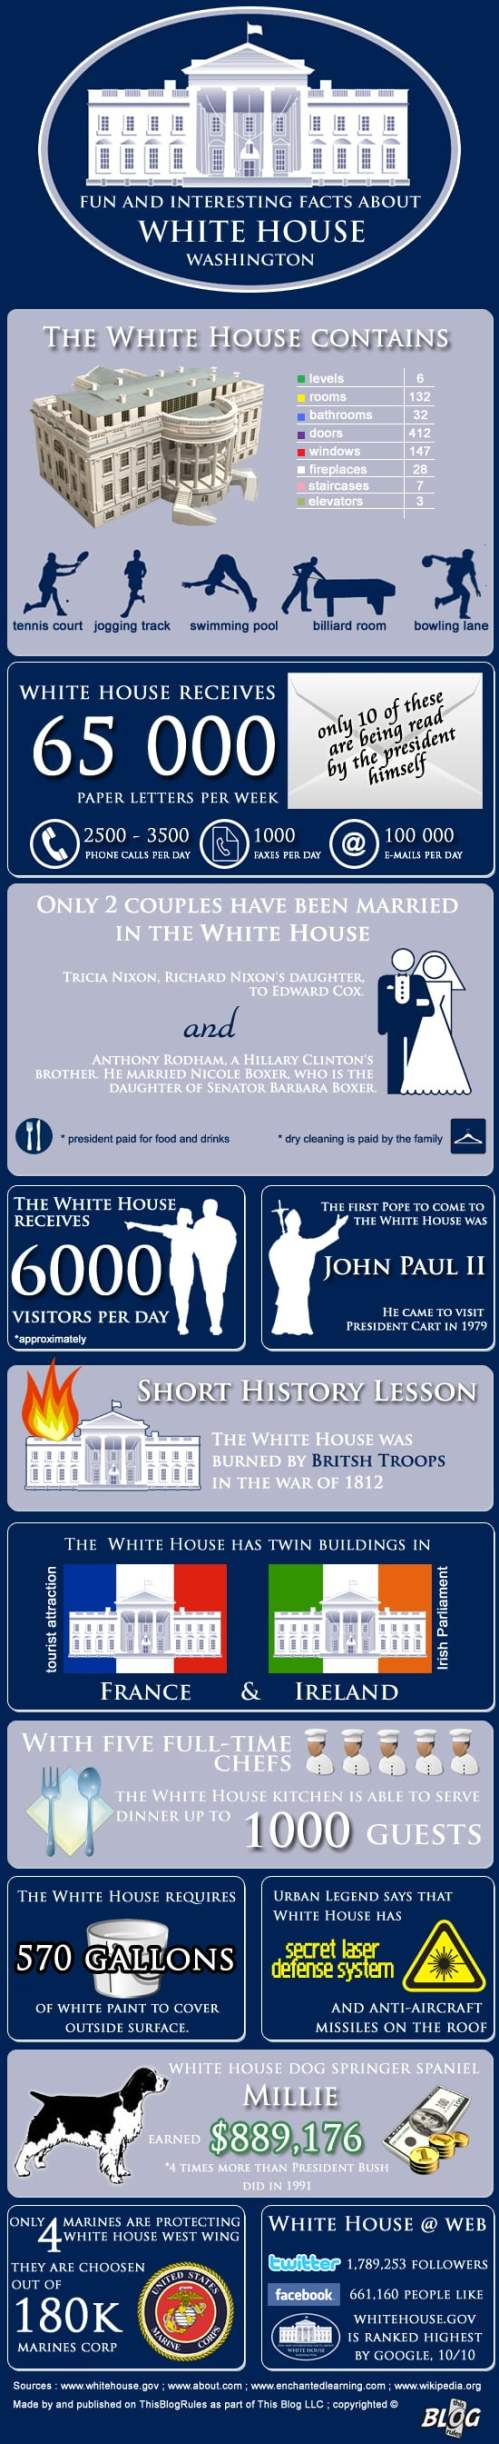 Fun and interesting facts about White House